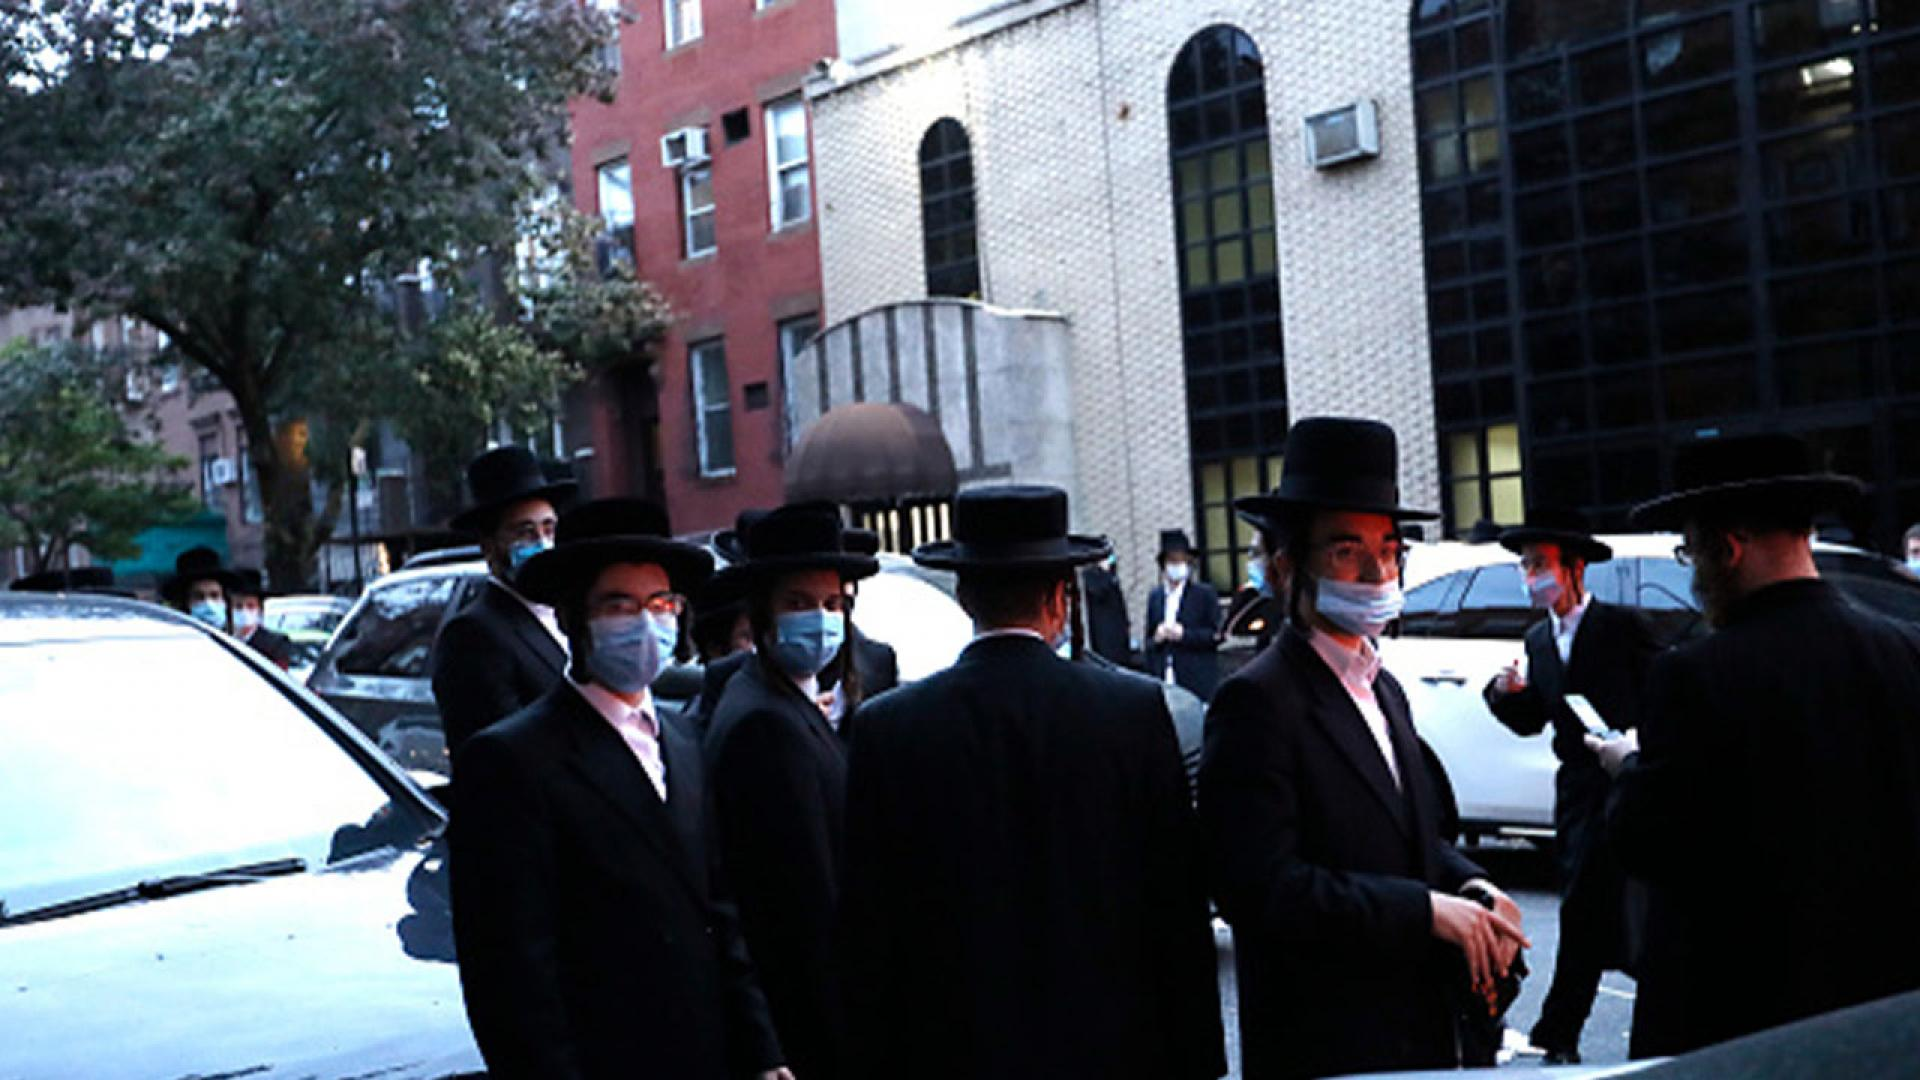 Outside the Yetev Lev Synagogue in Williamsburg